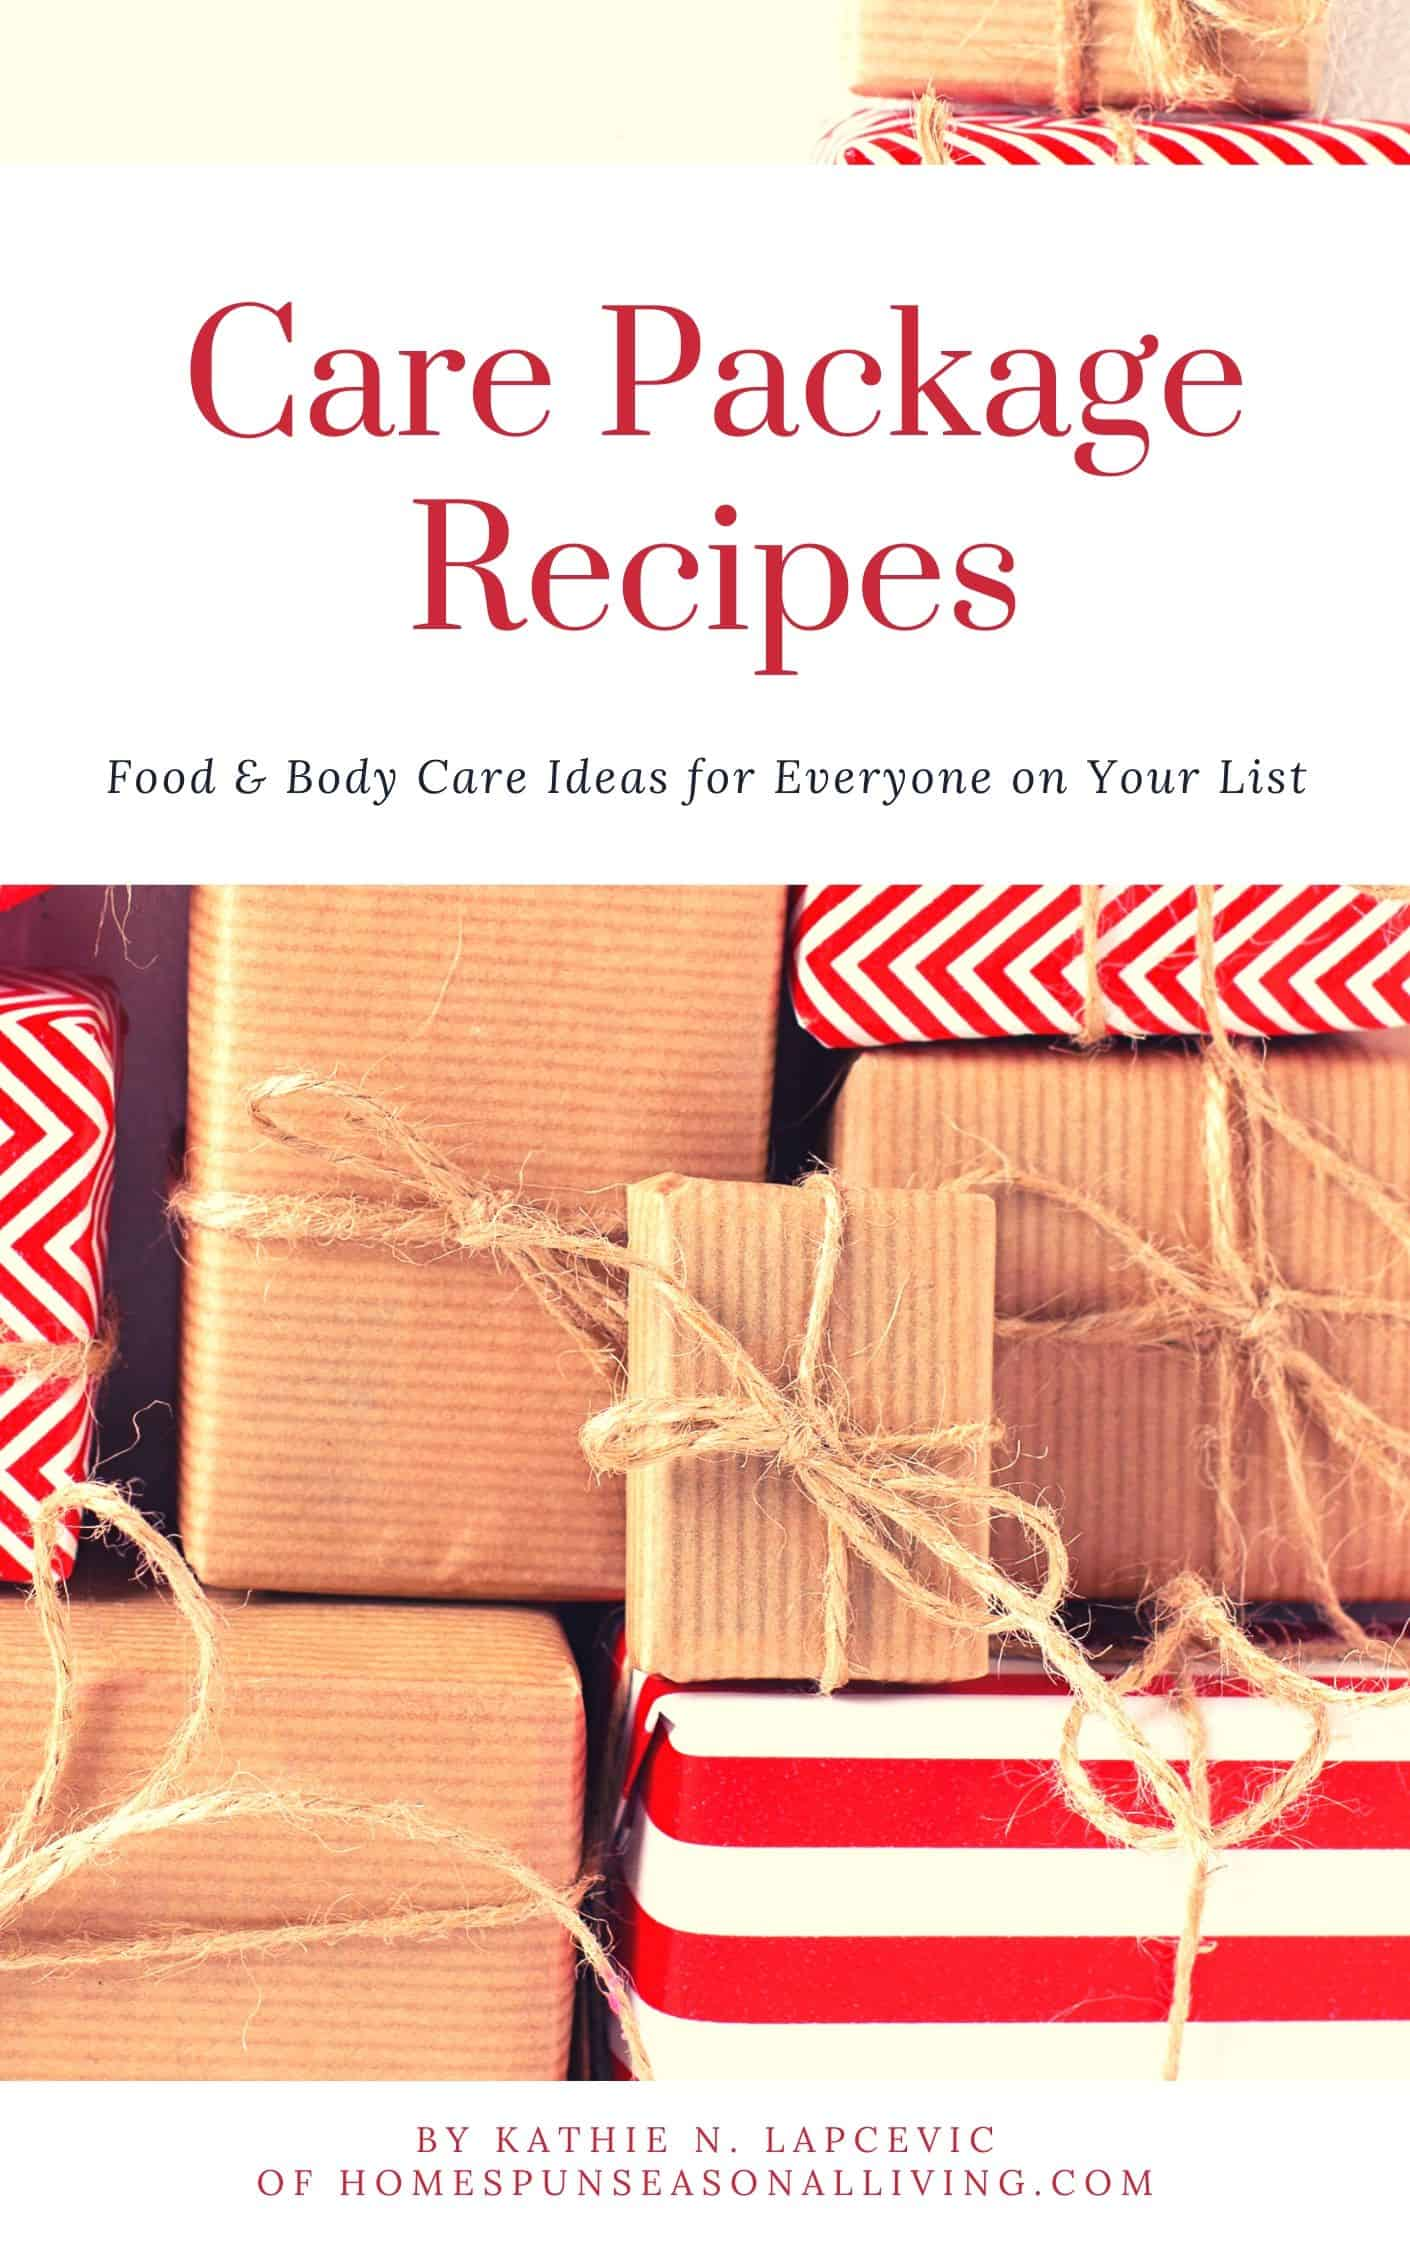 Care Package Recipes E-book